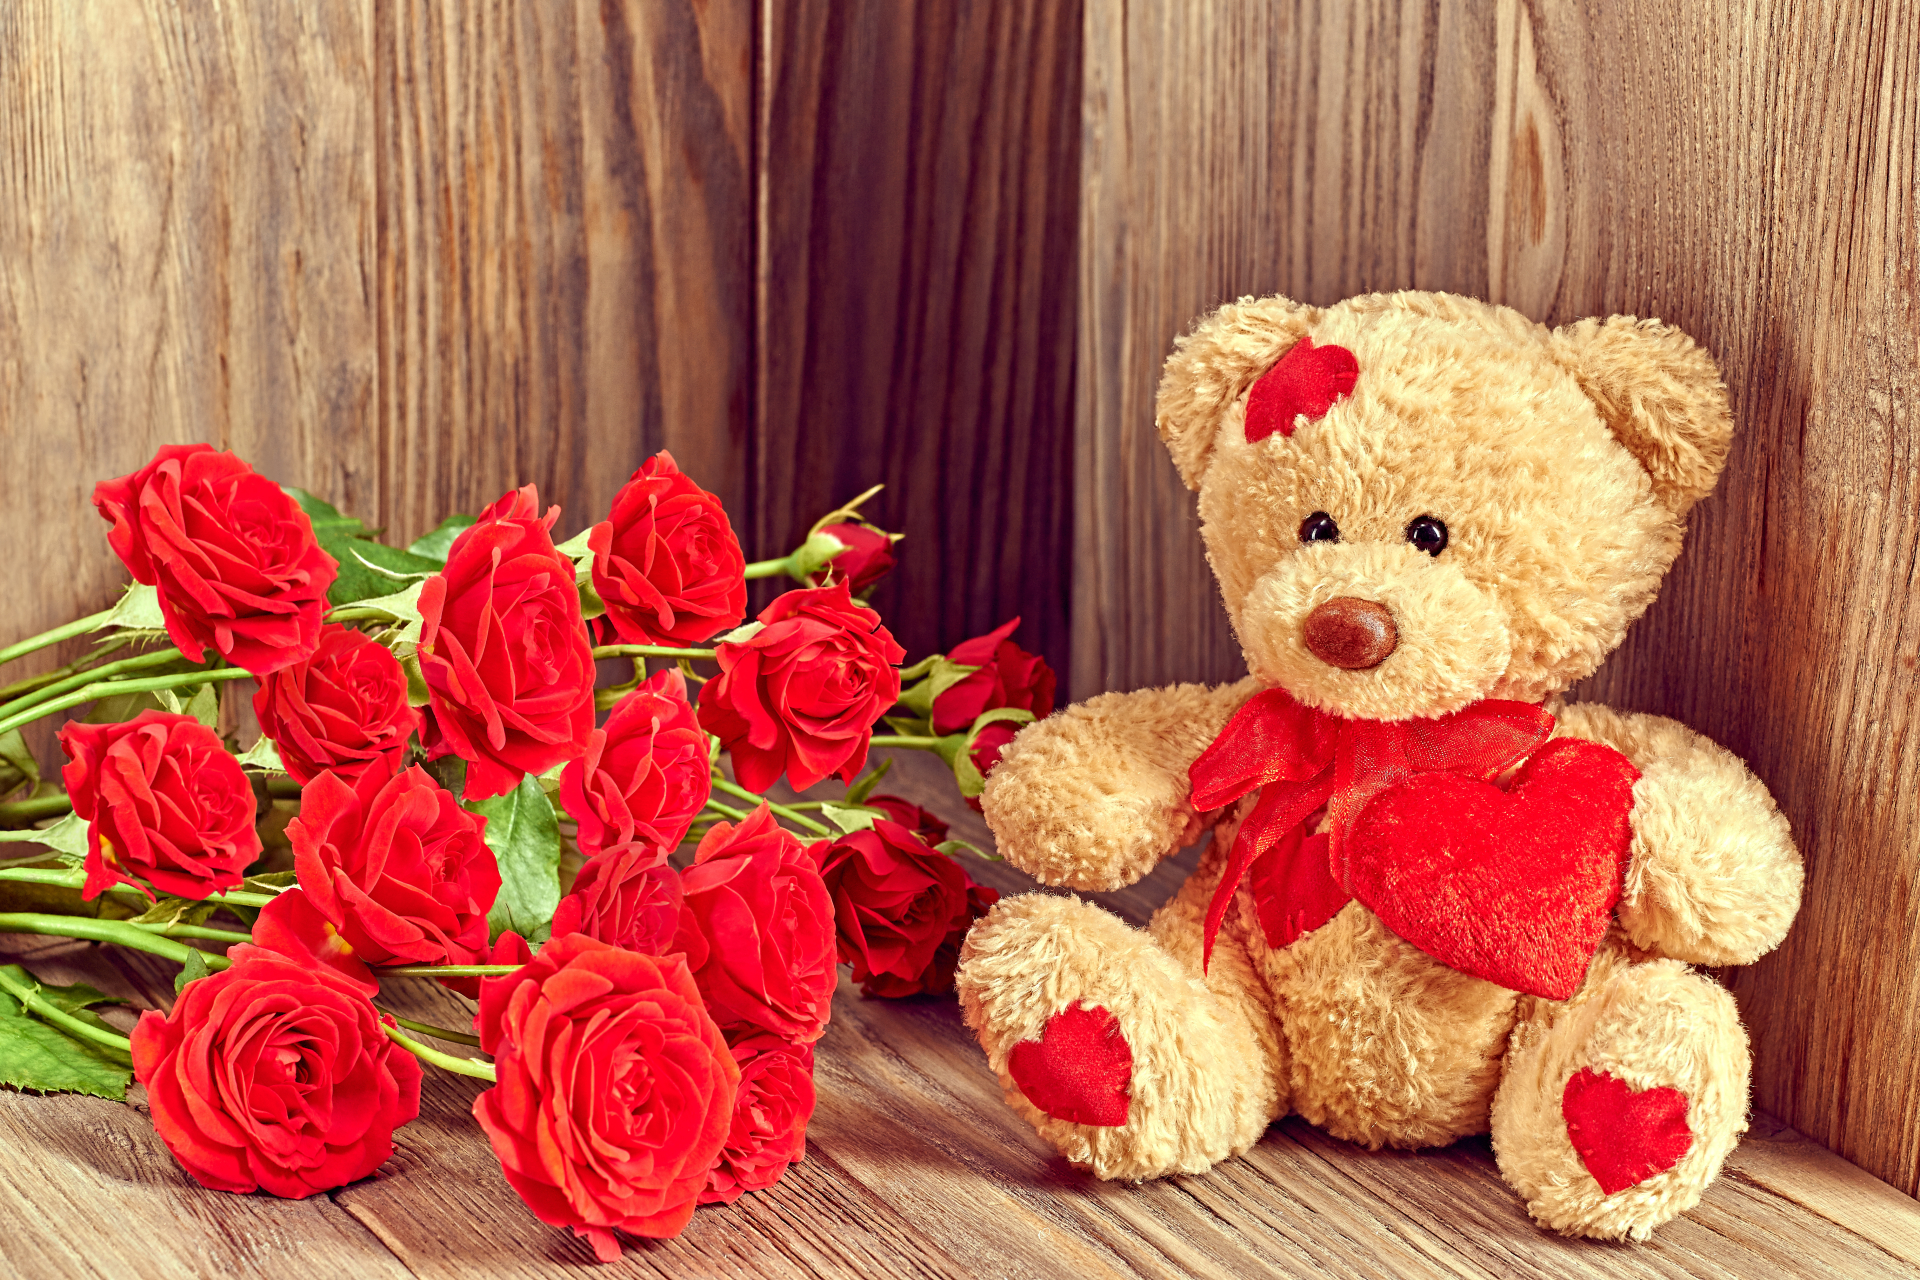 Red roses and cute teddy bear picture wallpaper hd red roses cute teddy bear picture background wallpaper voltagebd Gallery